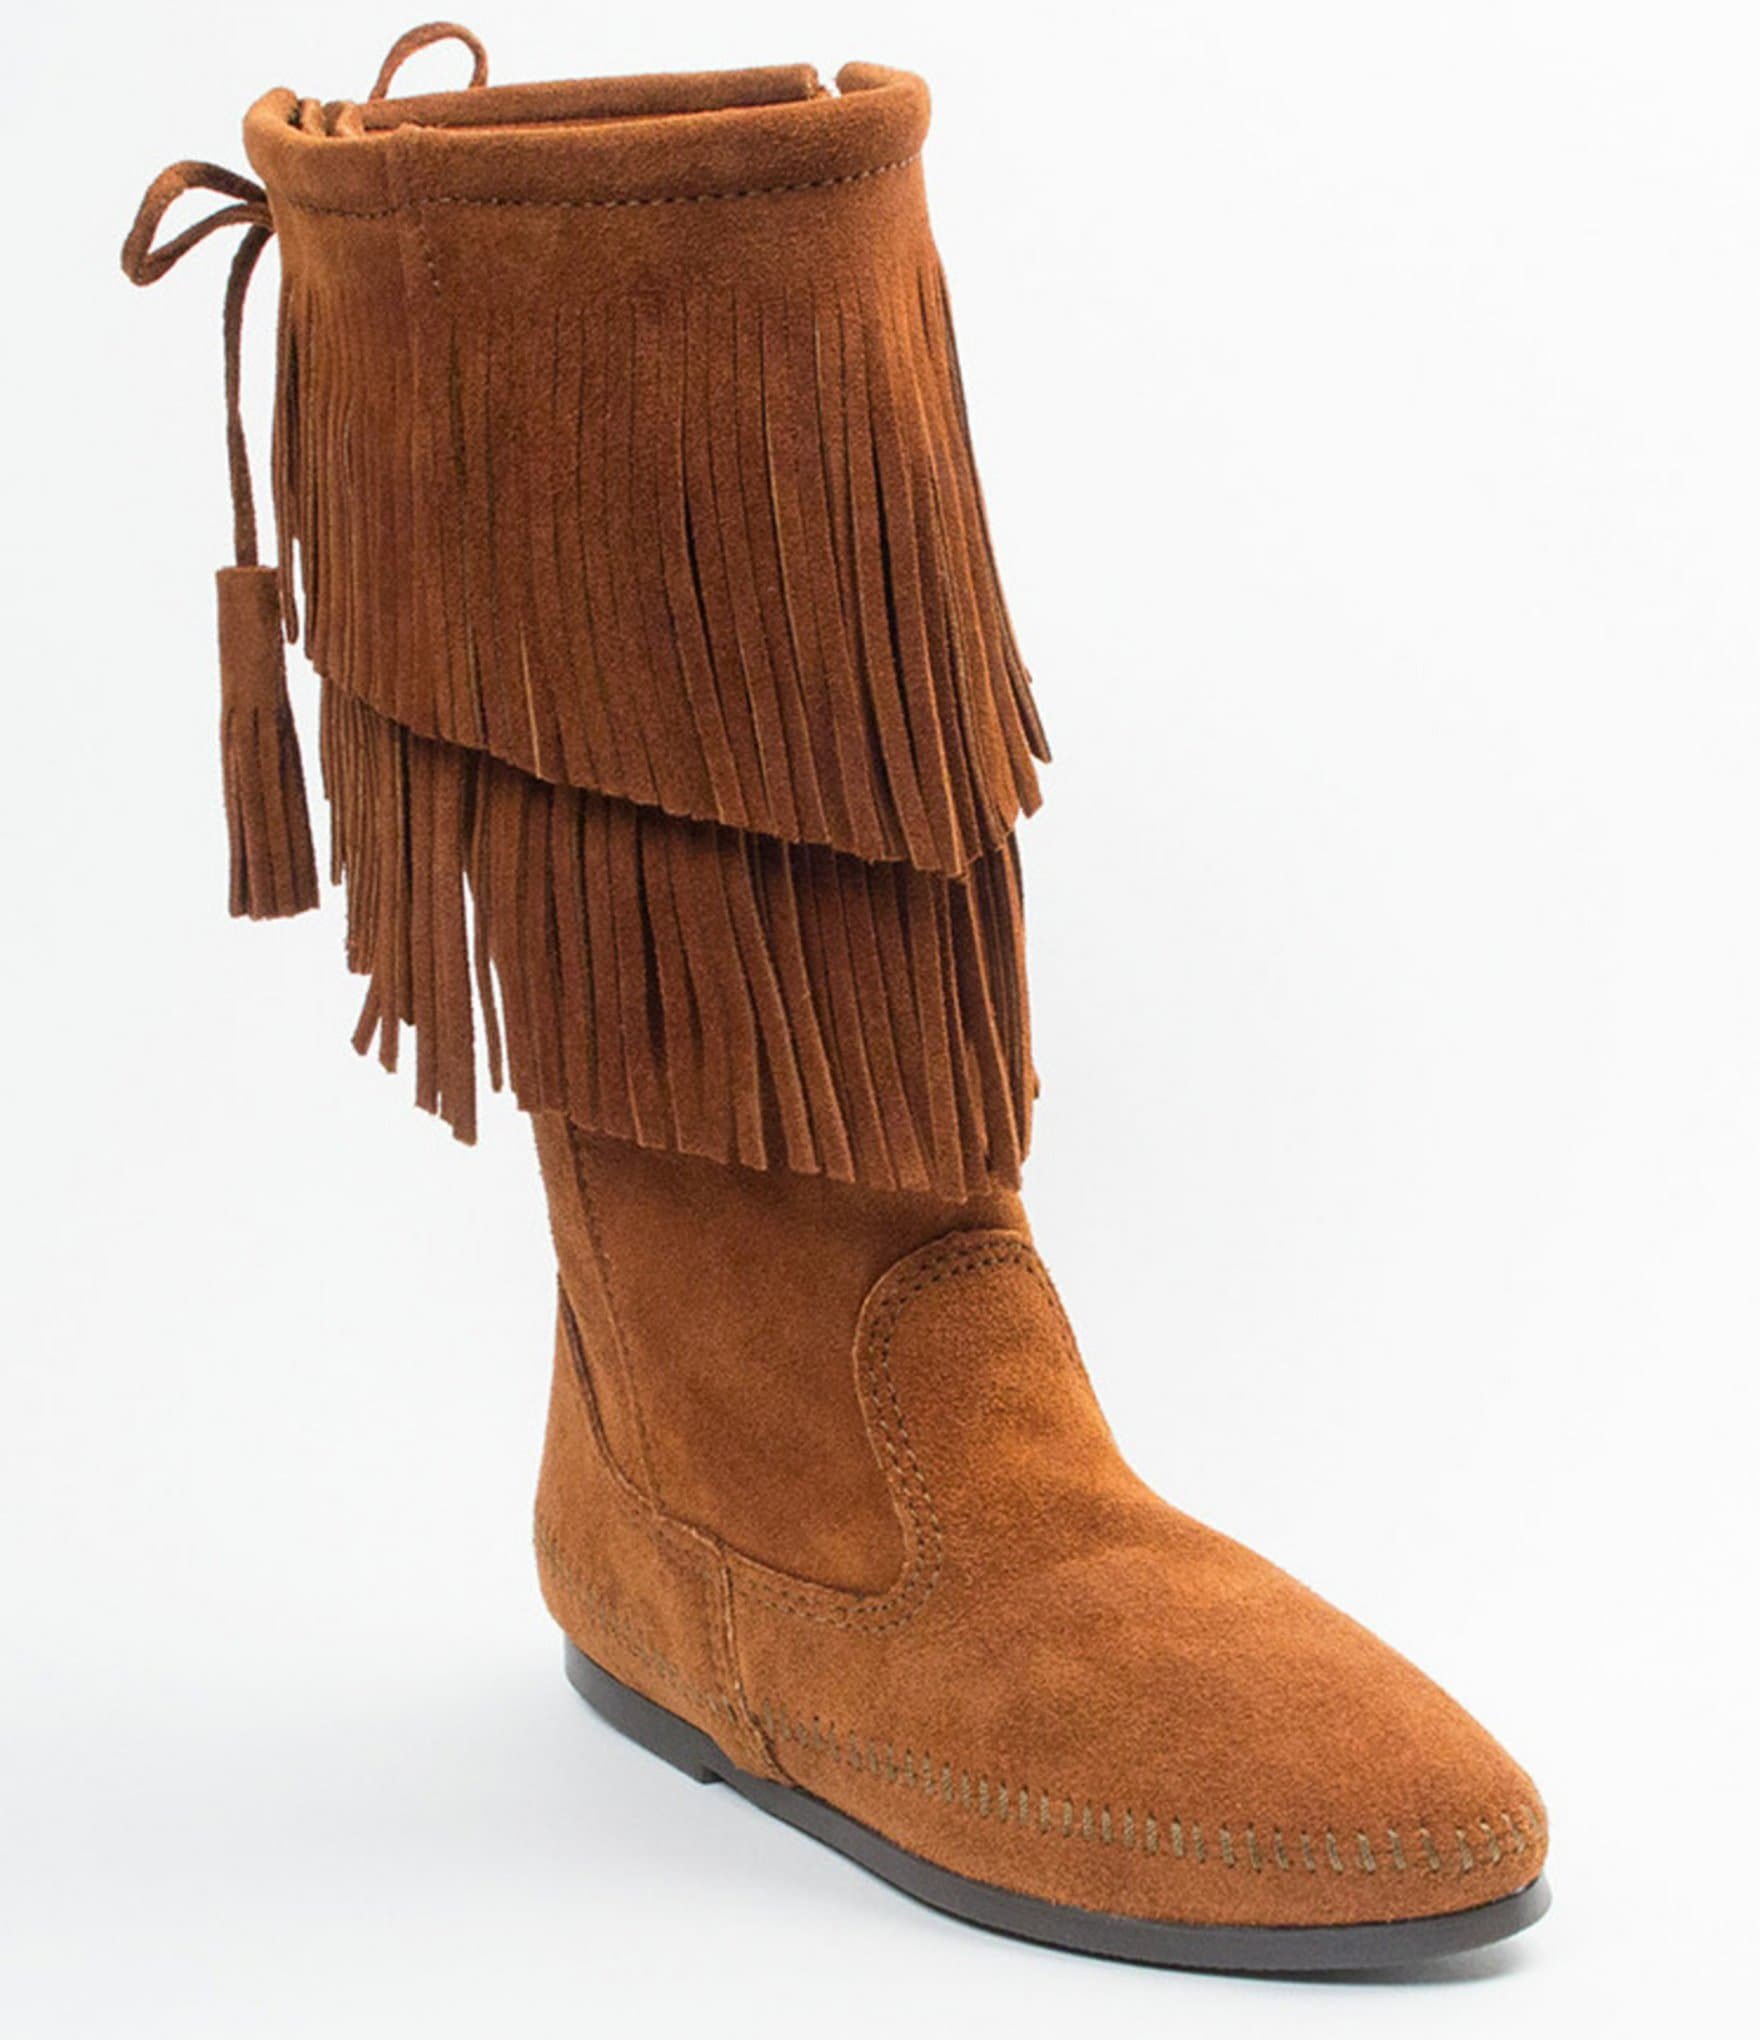 Minnetonka suede leather knee high tall lace up moccasin fringe boots - Minnetonka Suede Leather Knee High Tall Lace Up Moccasin Fringe Boots 6